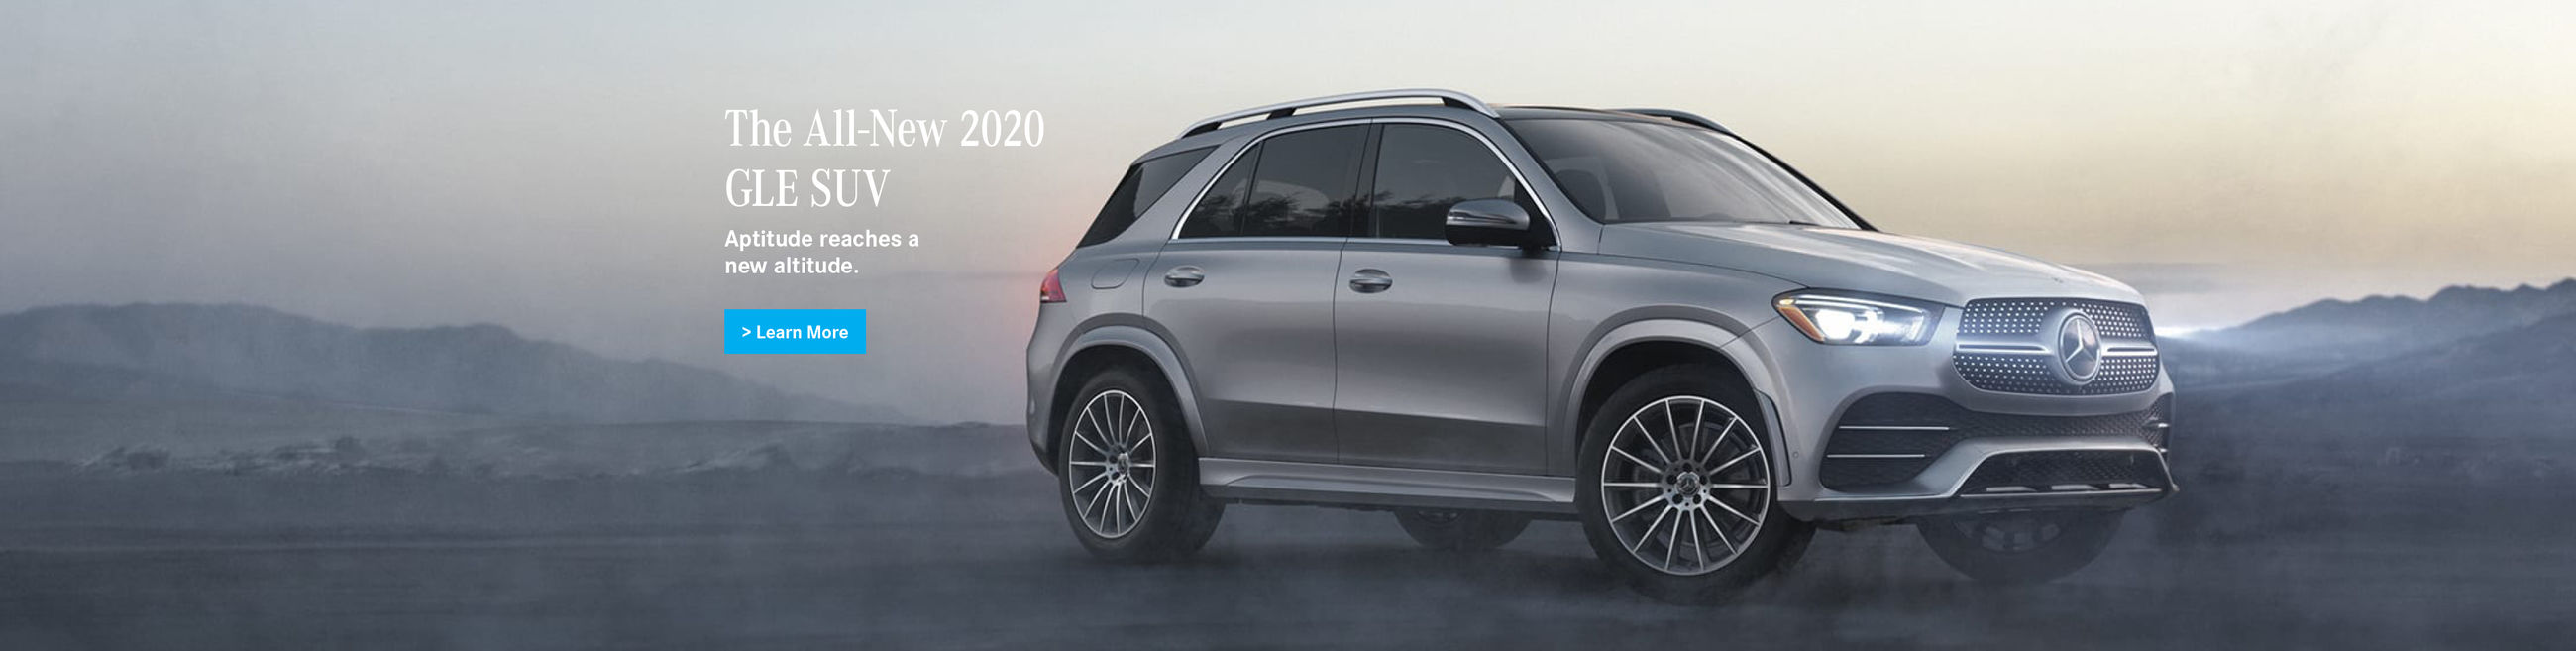 The All-New 2020 GLE SUV